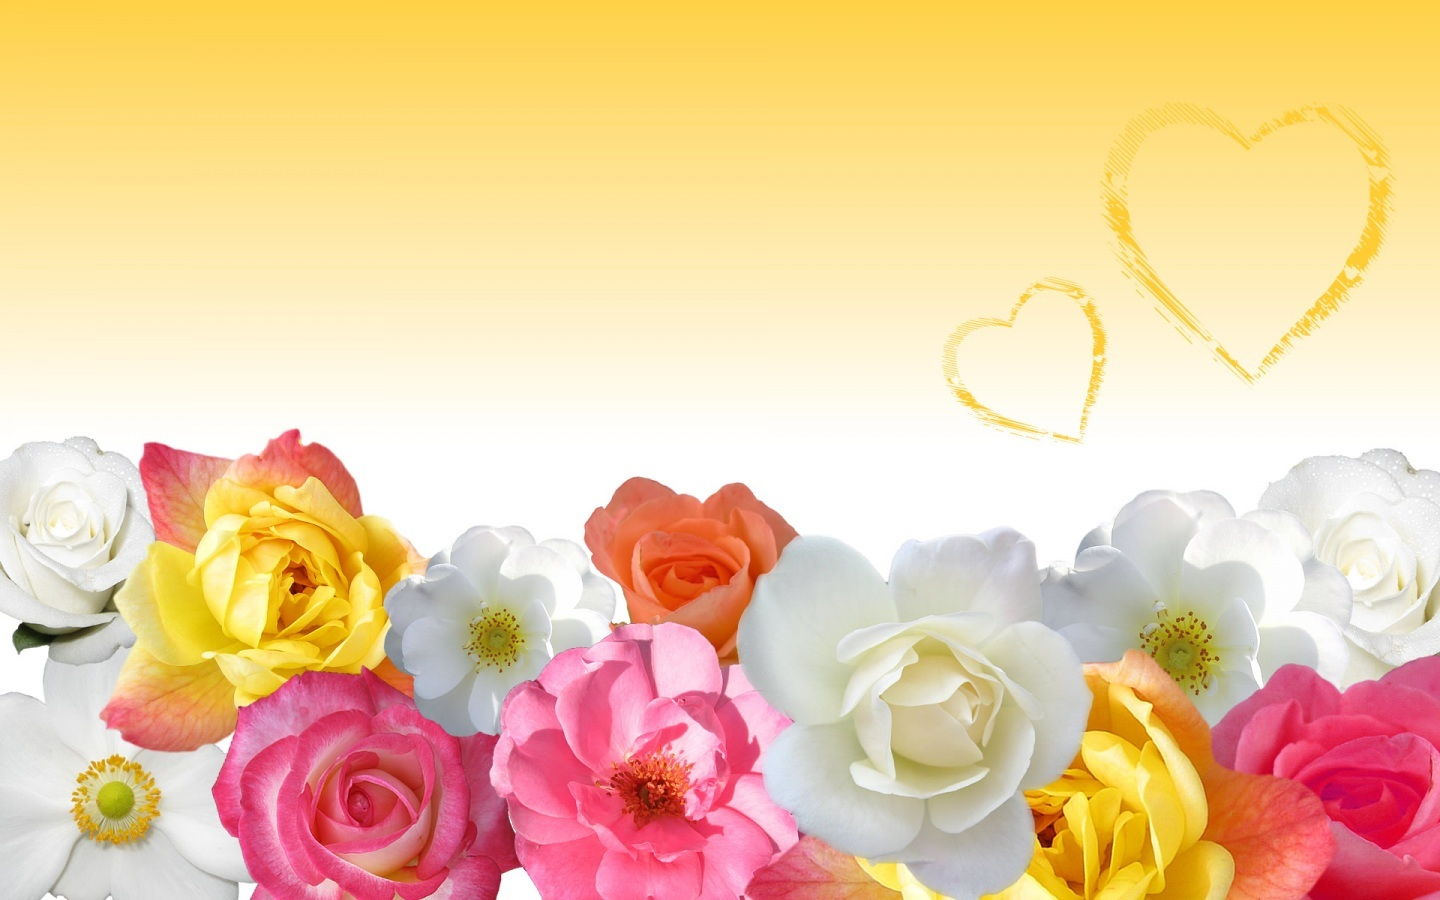 Yellow Flowers Wallpaper Analysis Short Story Sparknotes Pdf Full Text 1440x900